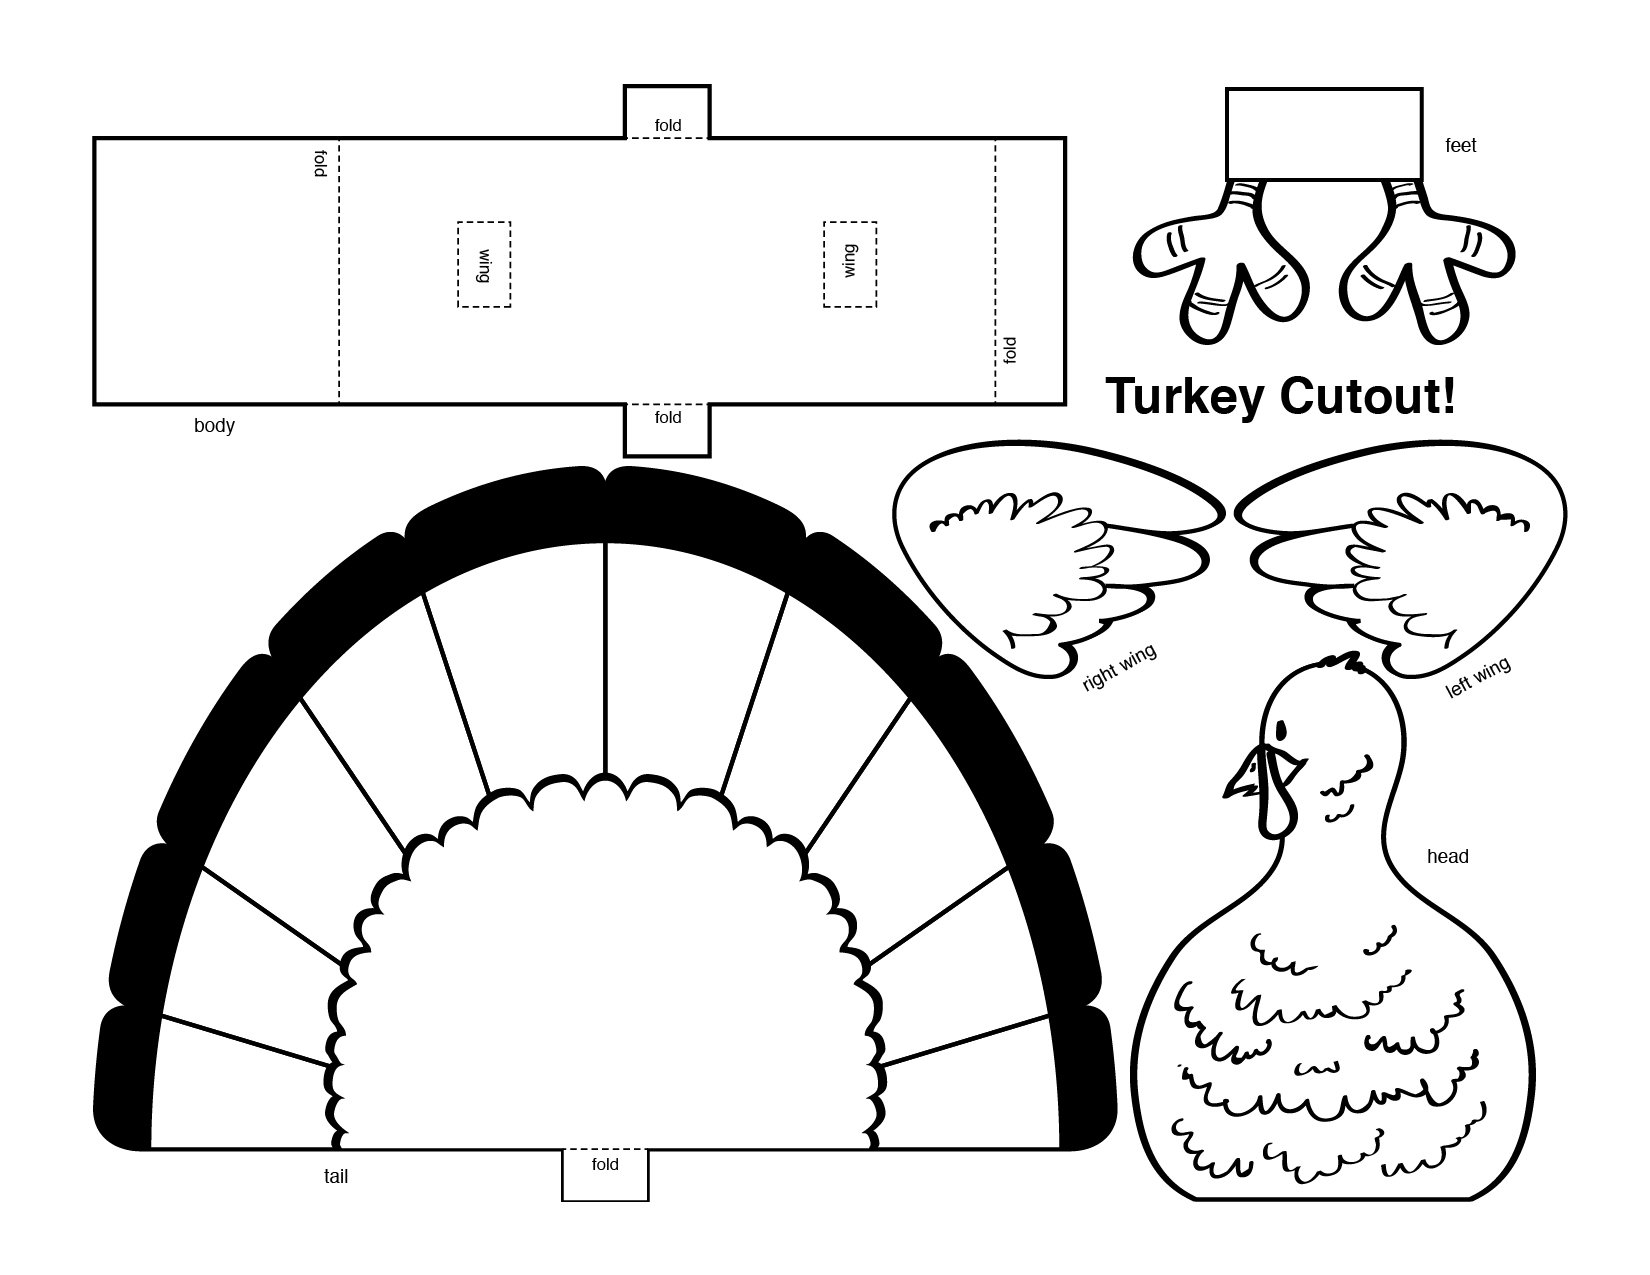 image about Turkey Cut Out Printable known as Thanksgiving 3D Turkey Cutout Downloadable Artwork Venture for Youngsters